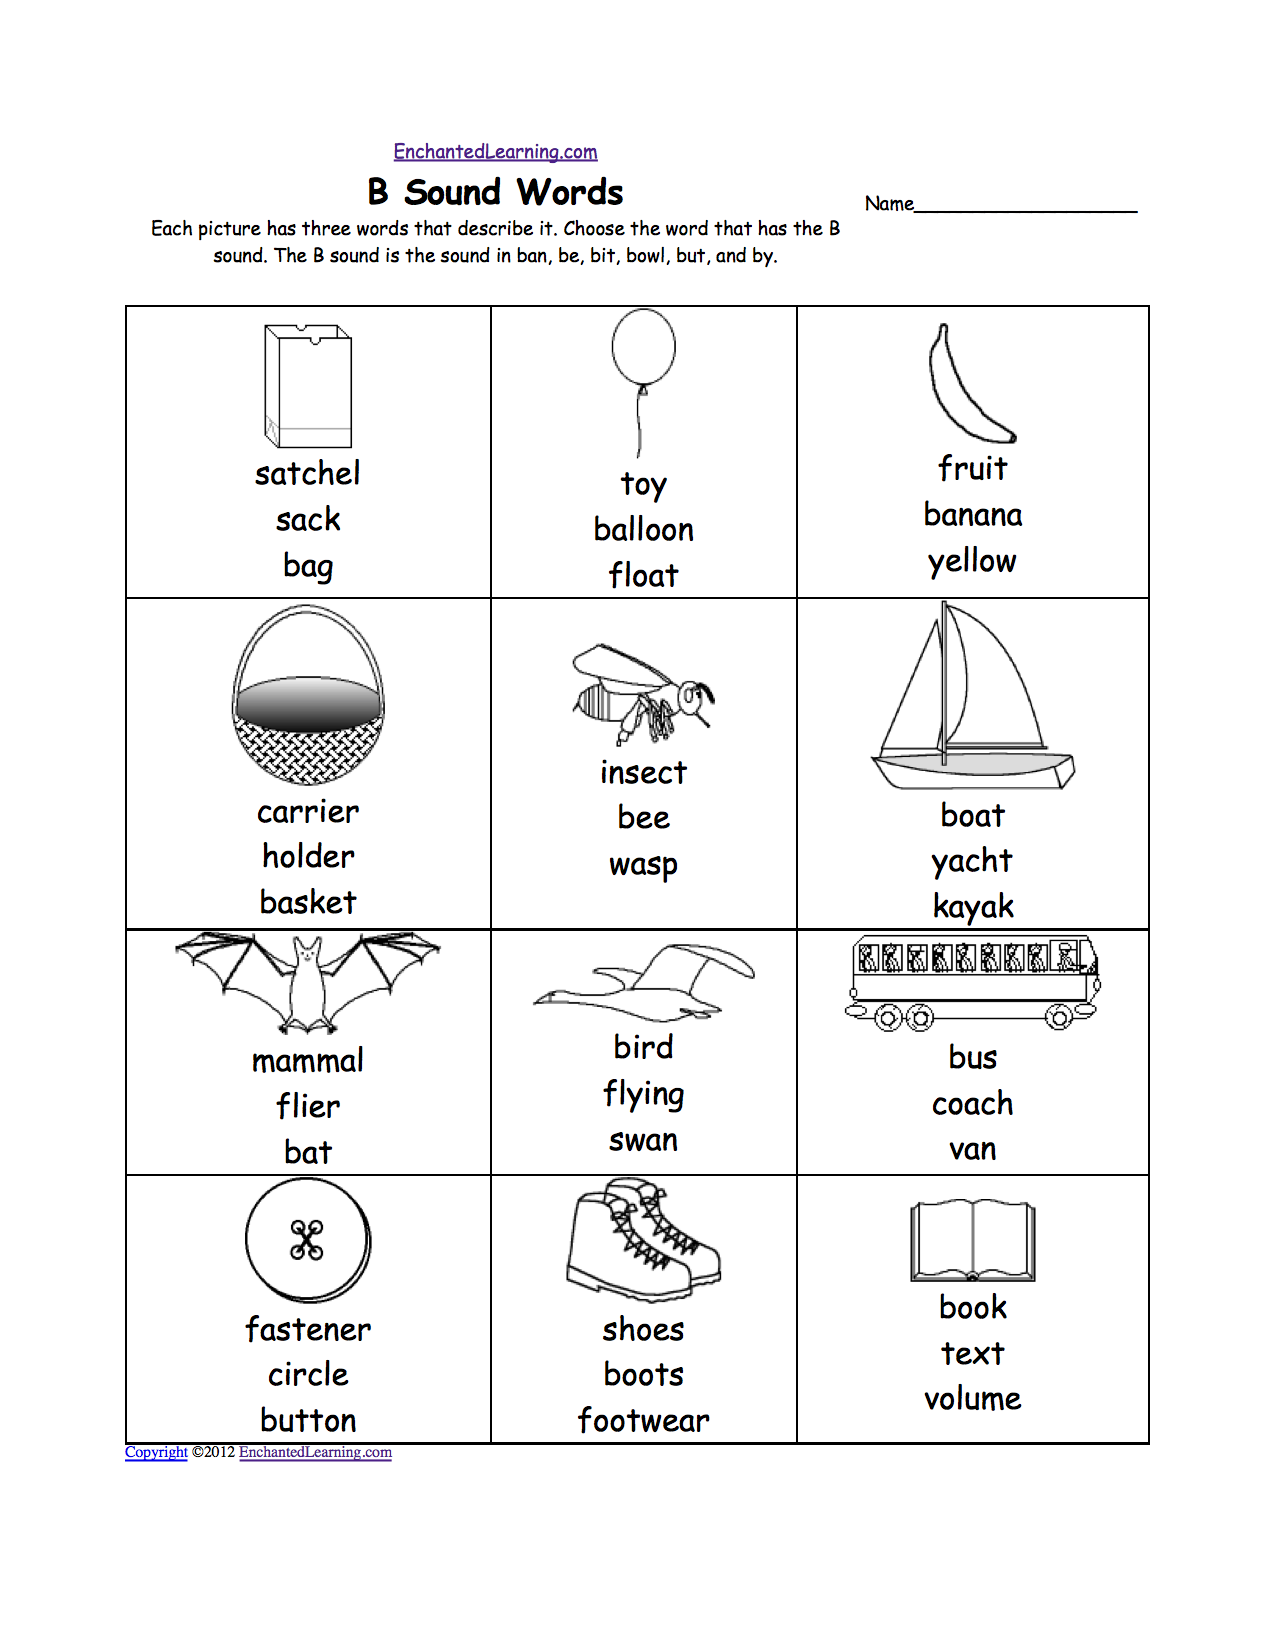 worksheet Letter B Worksheets For Preschool letter b alphabet activities at enchantedlearning com br sound phonics worksheet multiple choice each picture has three words that describe it choose the word a sound